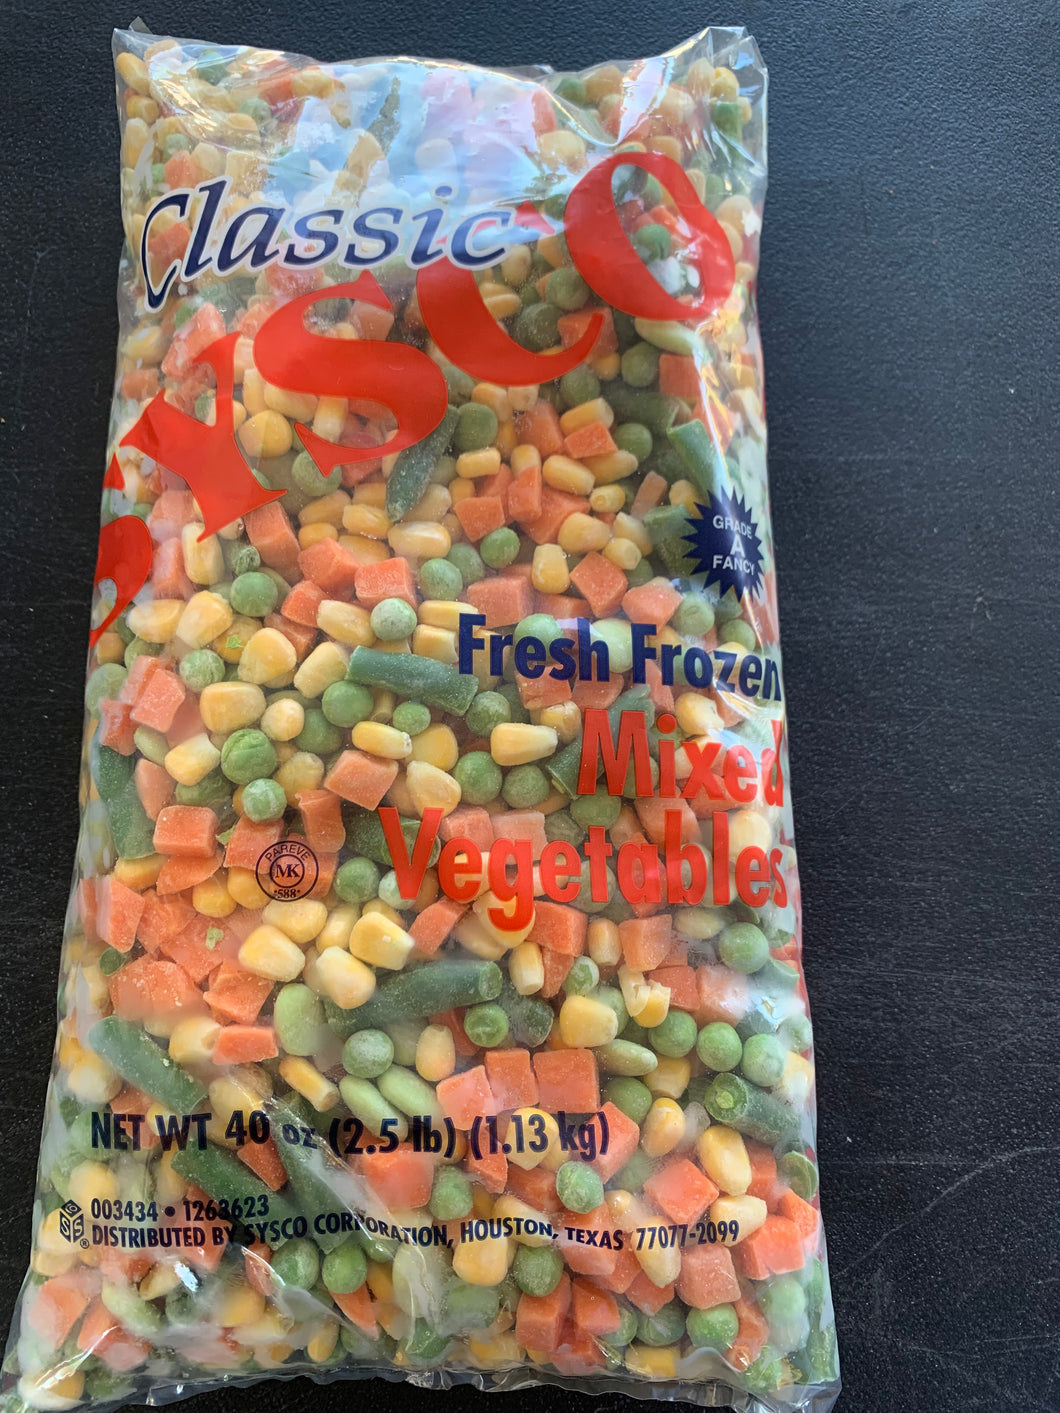 Sysco Classic - Mixed Veggies 5 Ways - 2.5 lbs. - Frozen - Groveland General